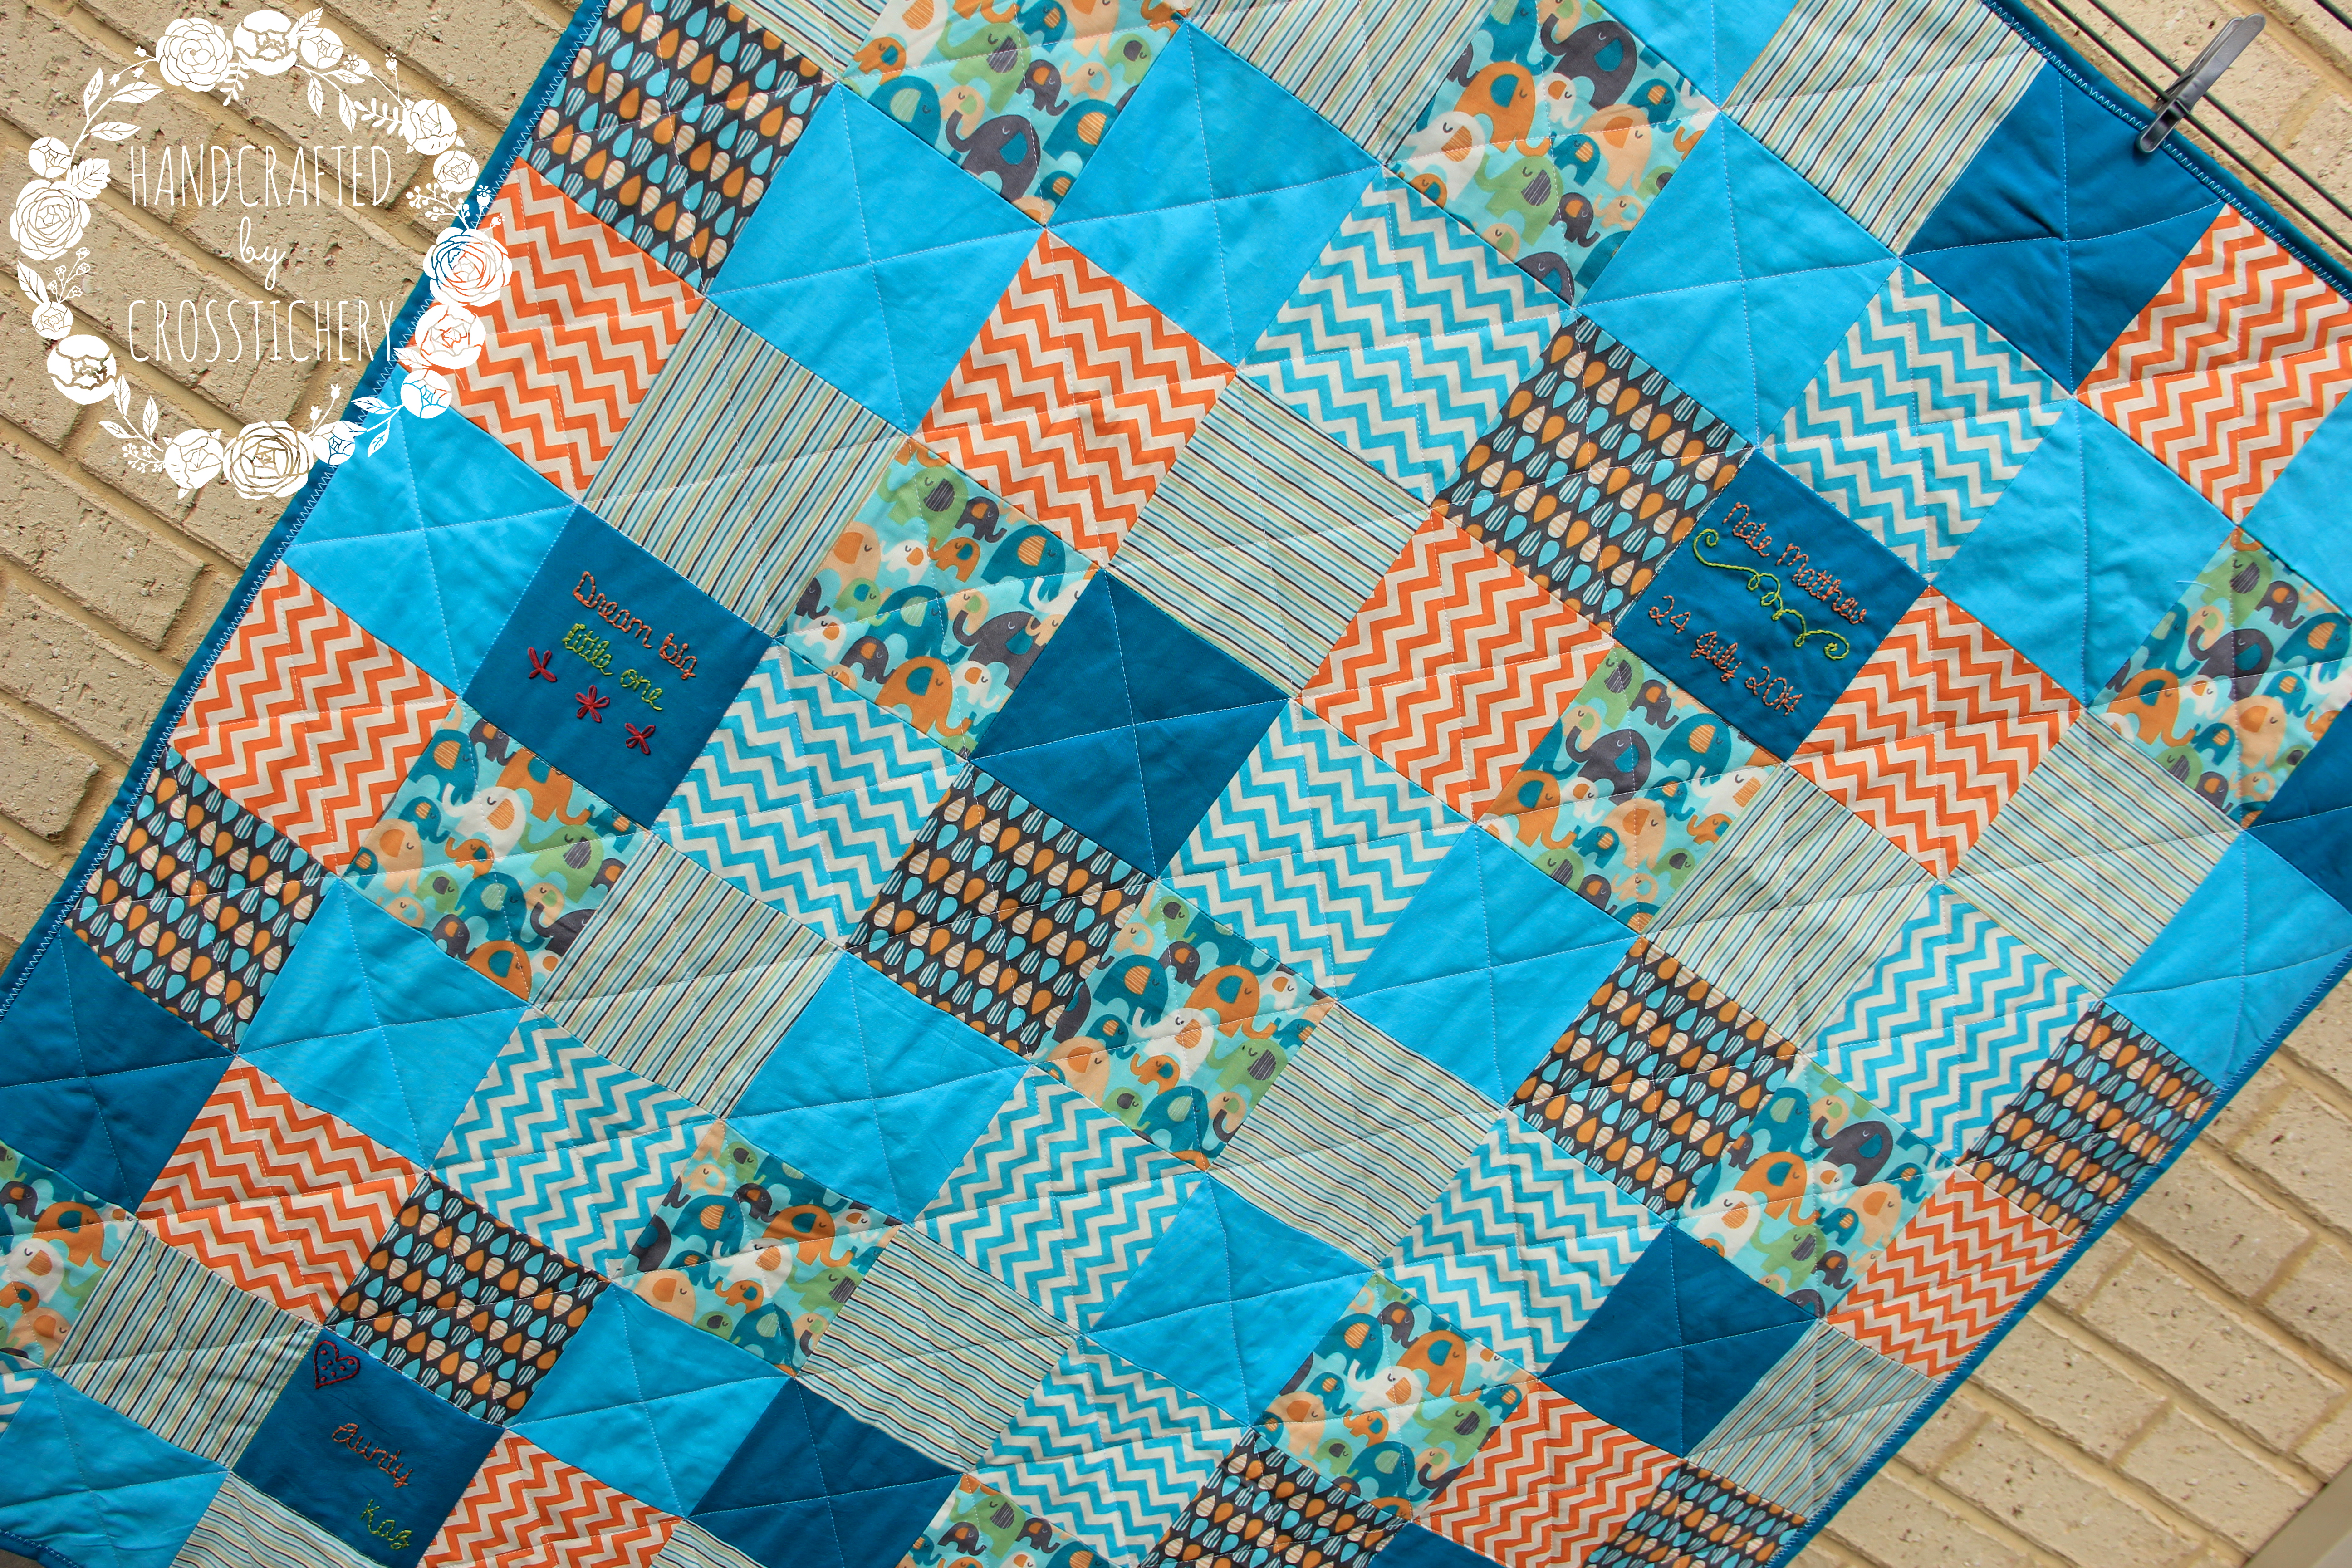 Baby Boy Square Quilt Top 4 | crosstitchery : square quilt - Adamdwight.com